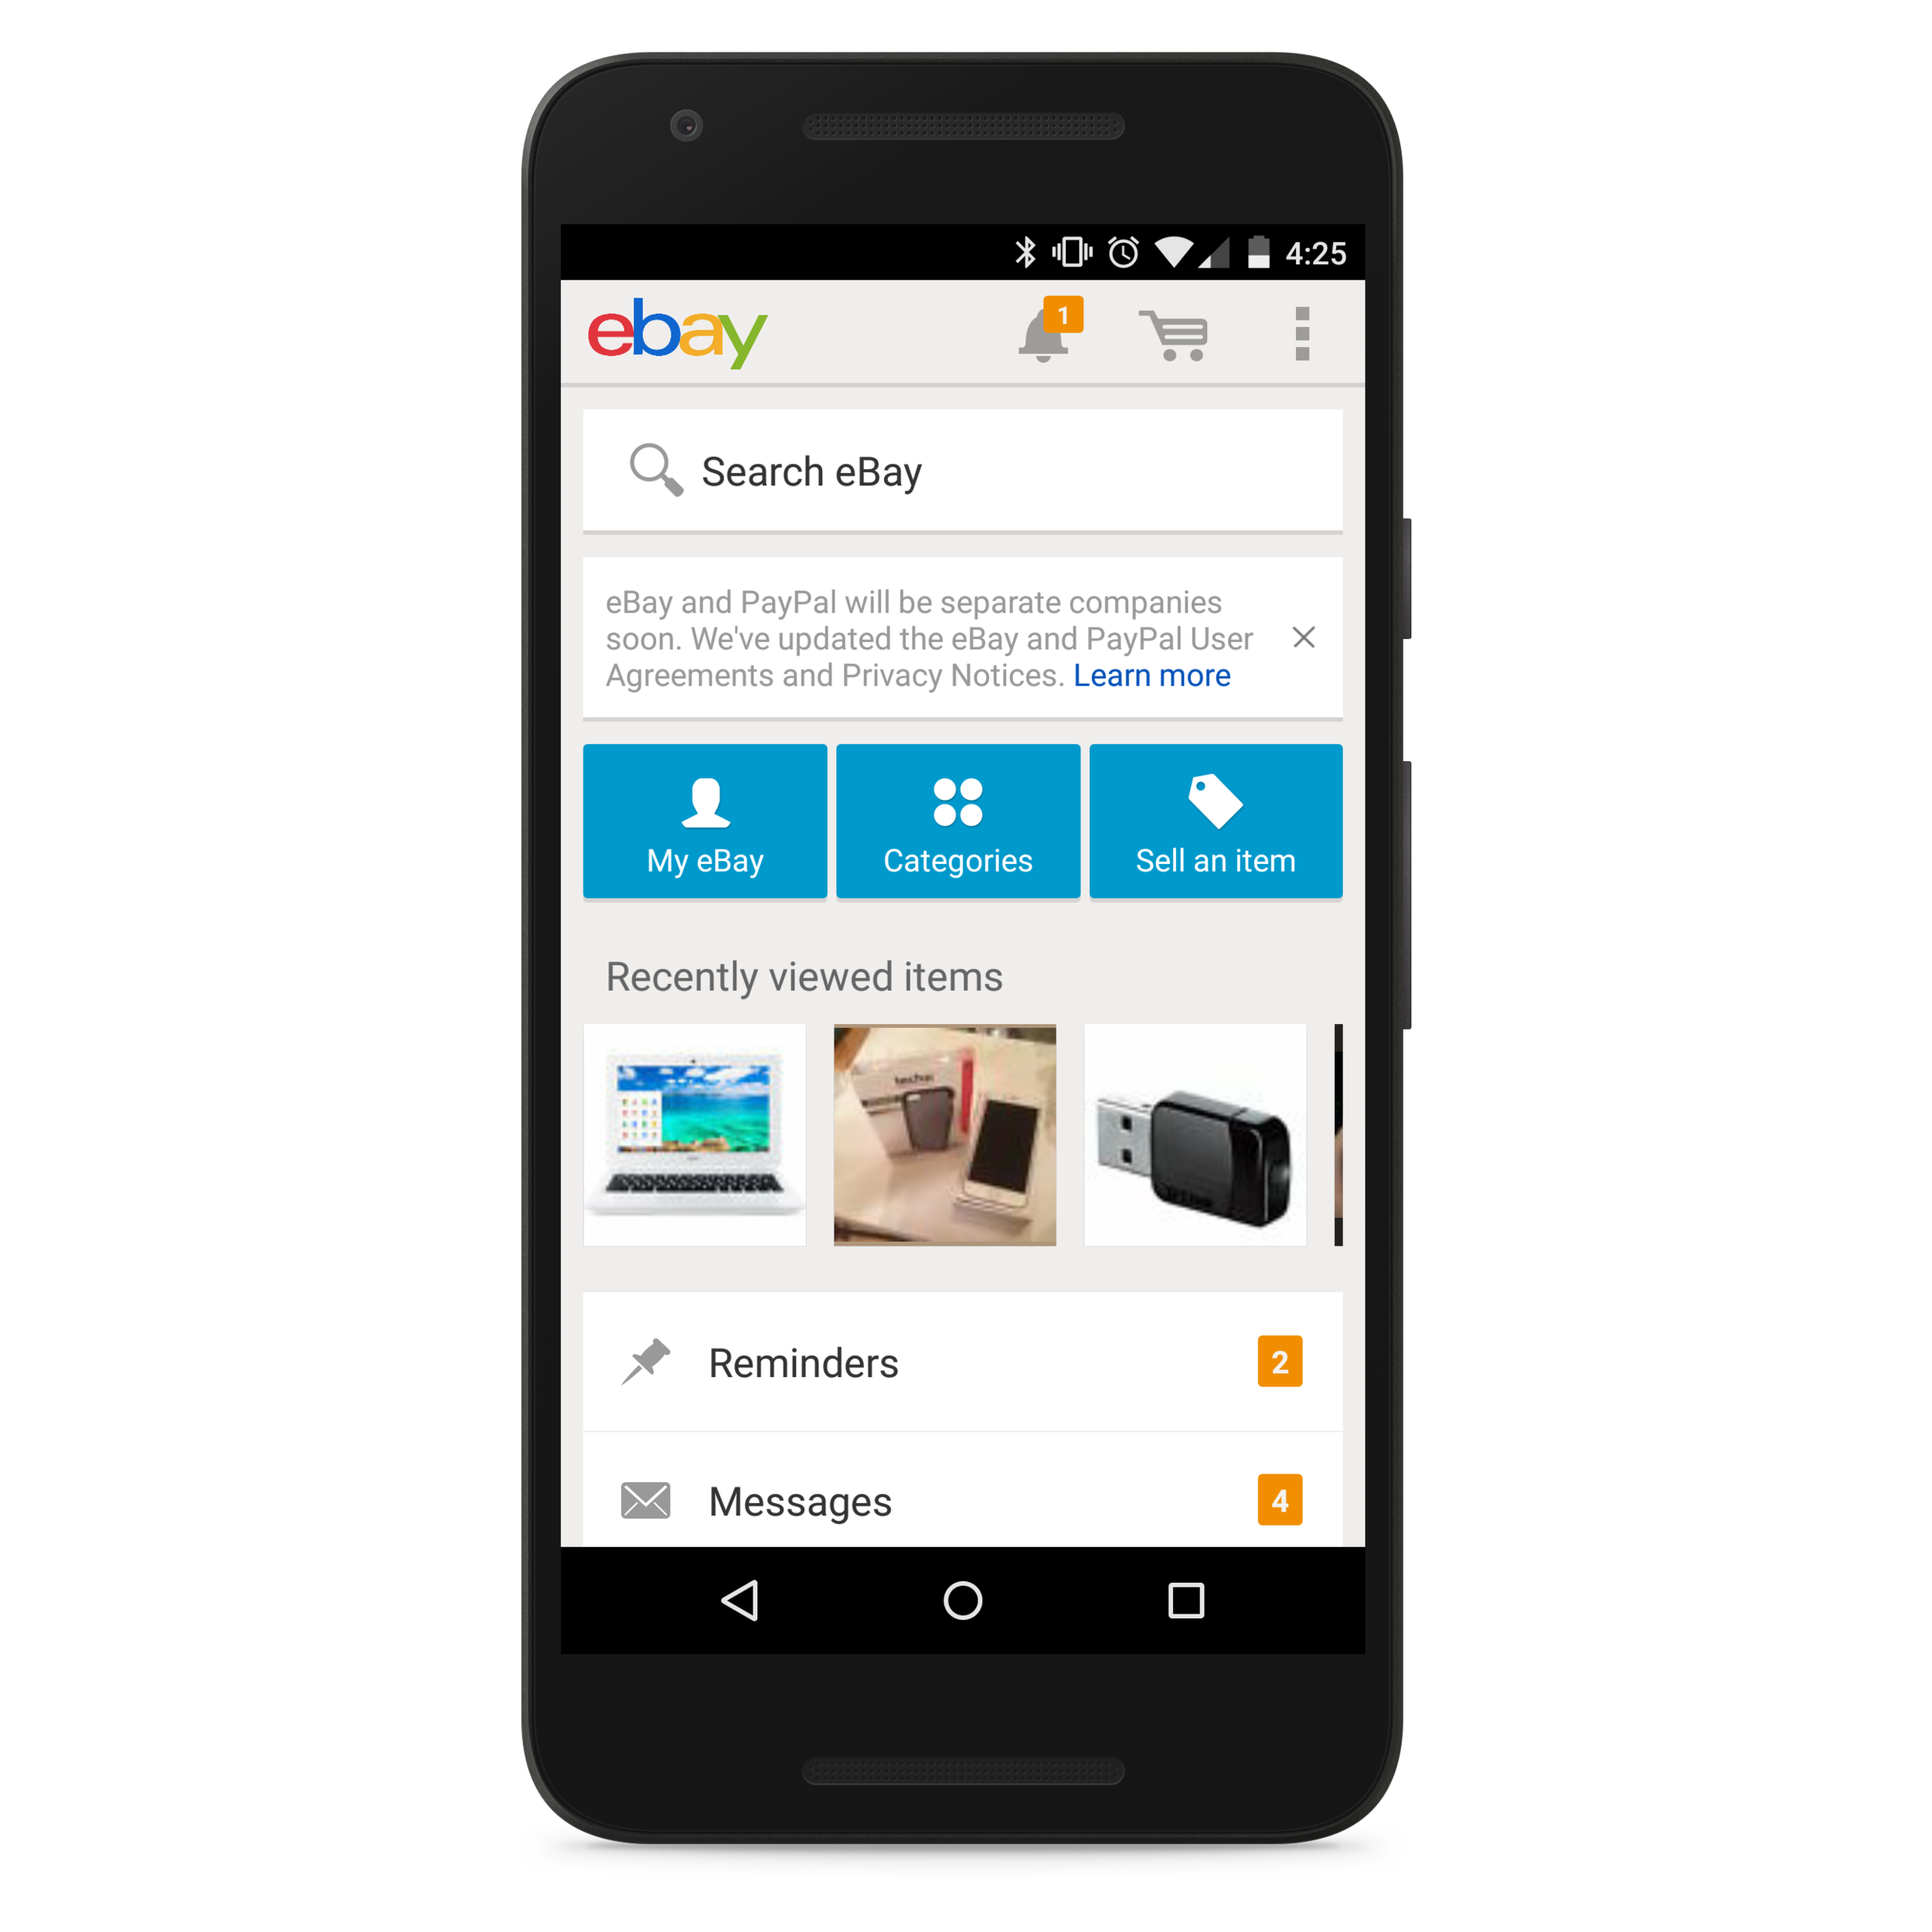 ebay-android-3.0.png